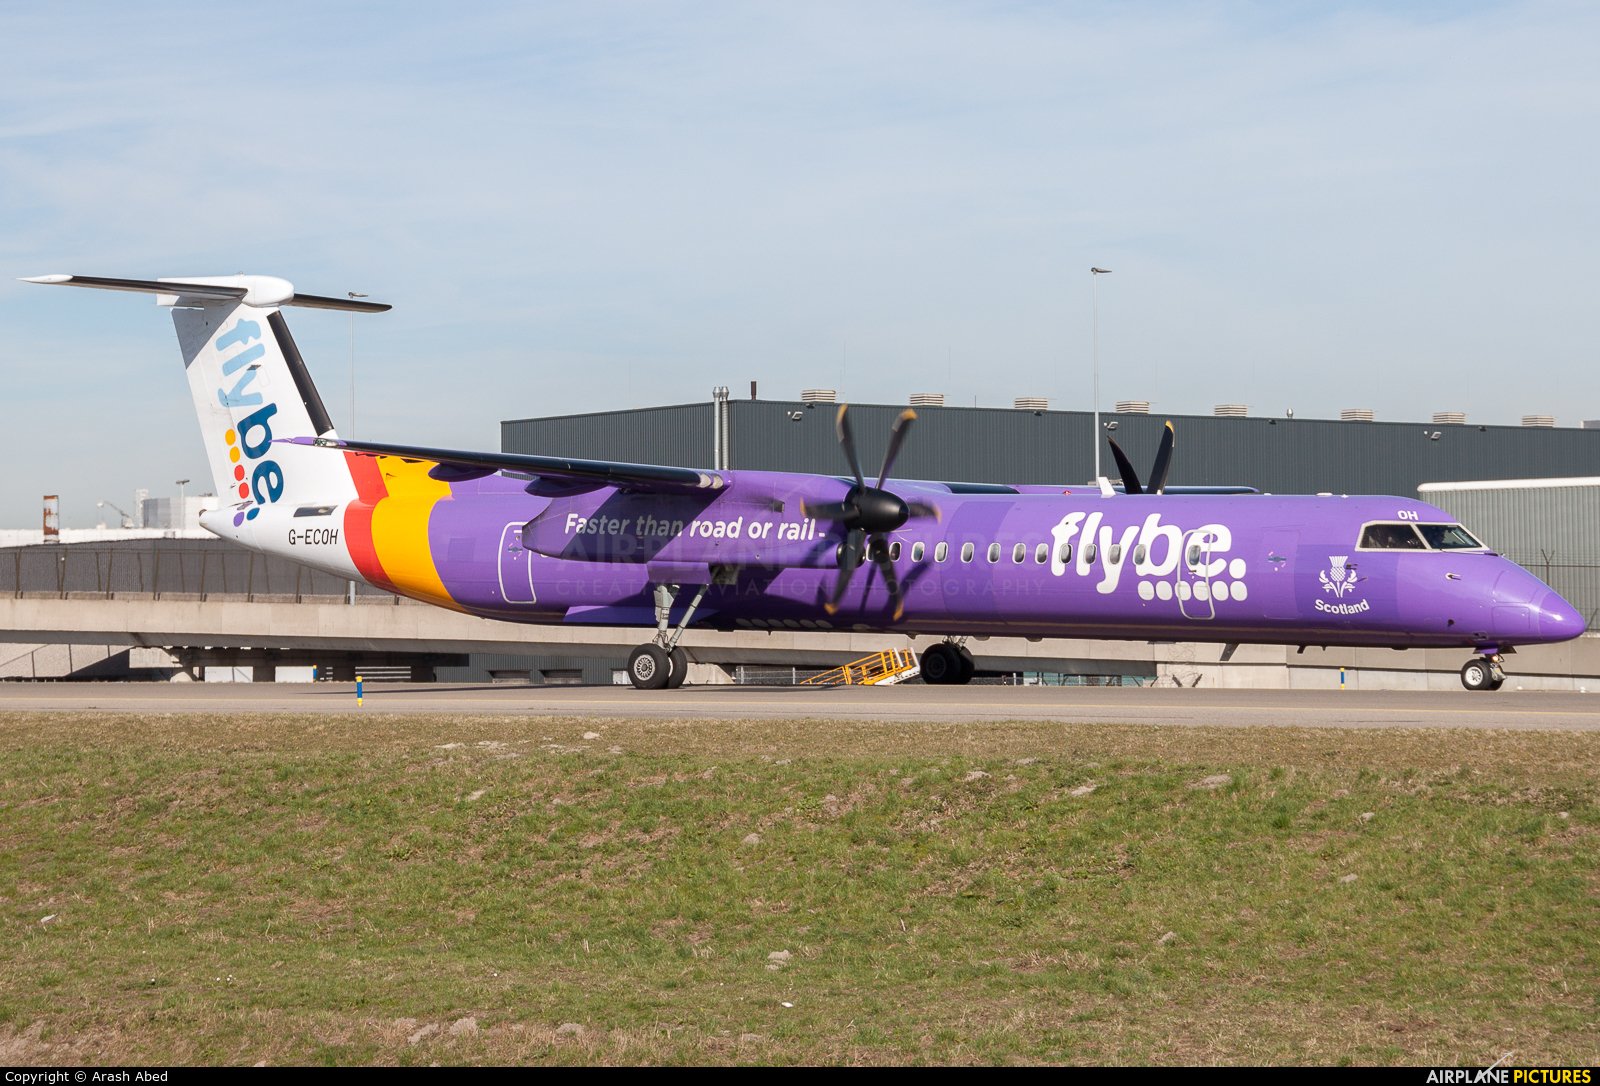 Flybe G-ECOH aircraft at Amsterdam - Schiphol